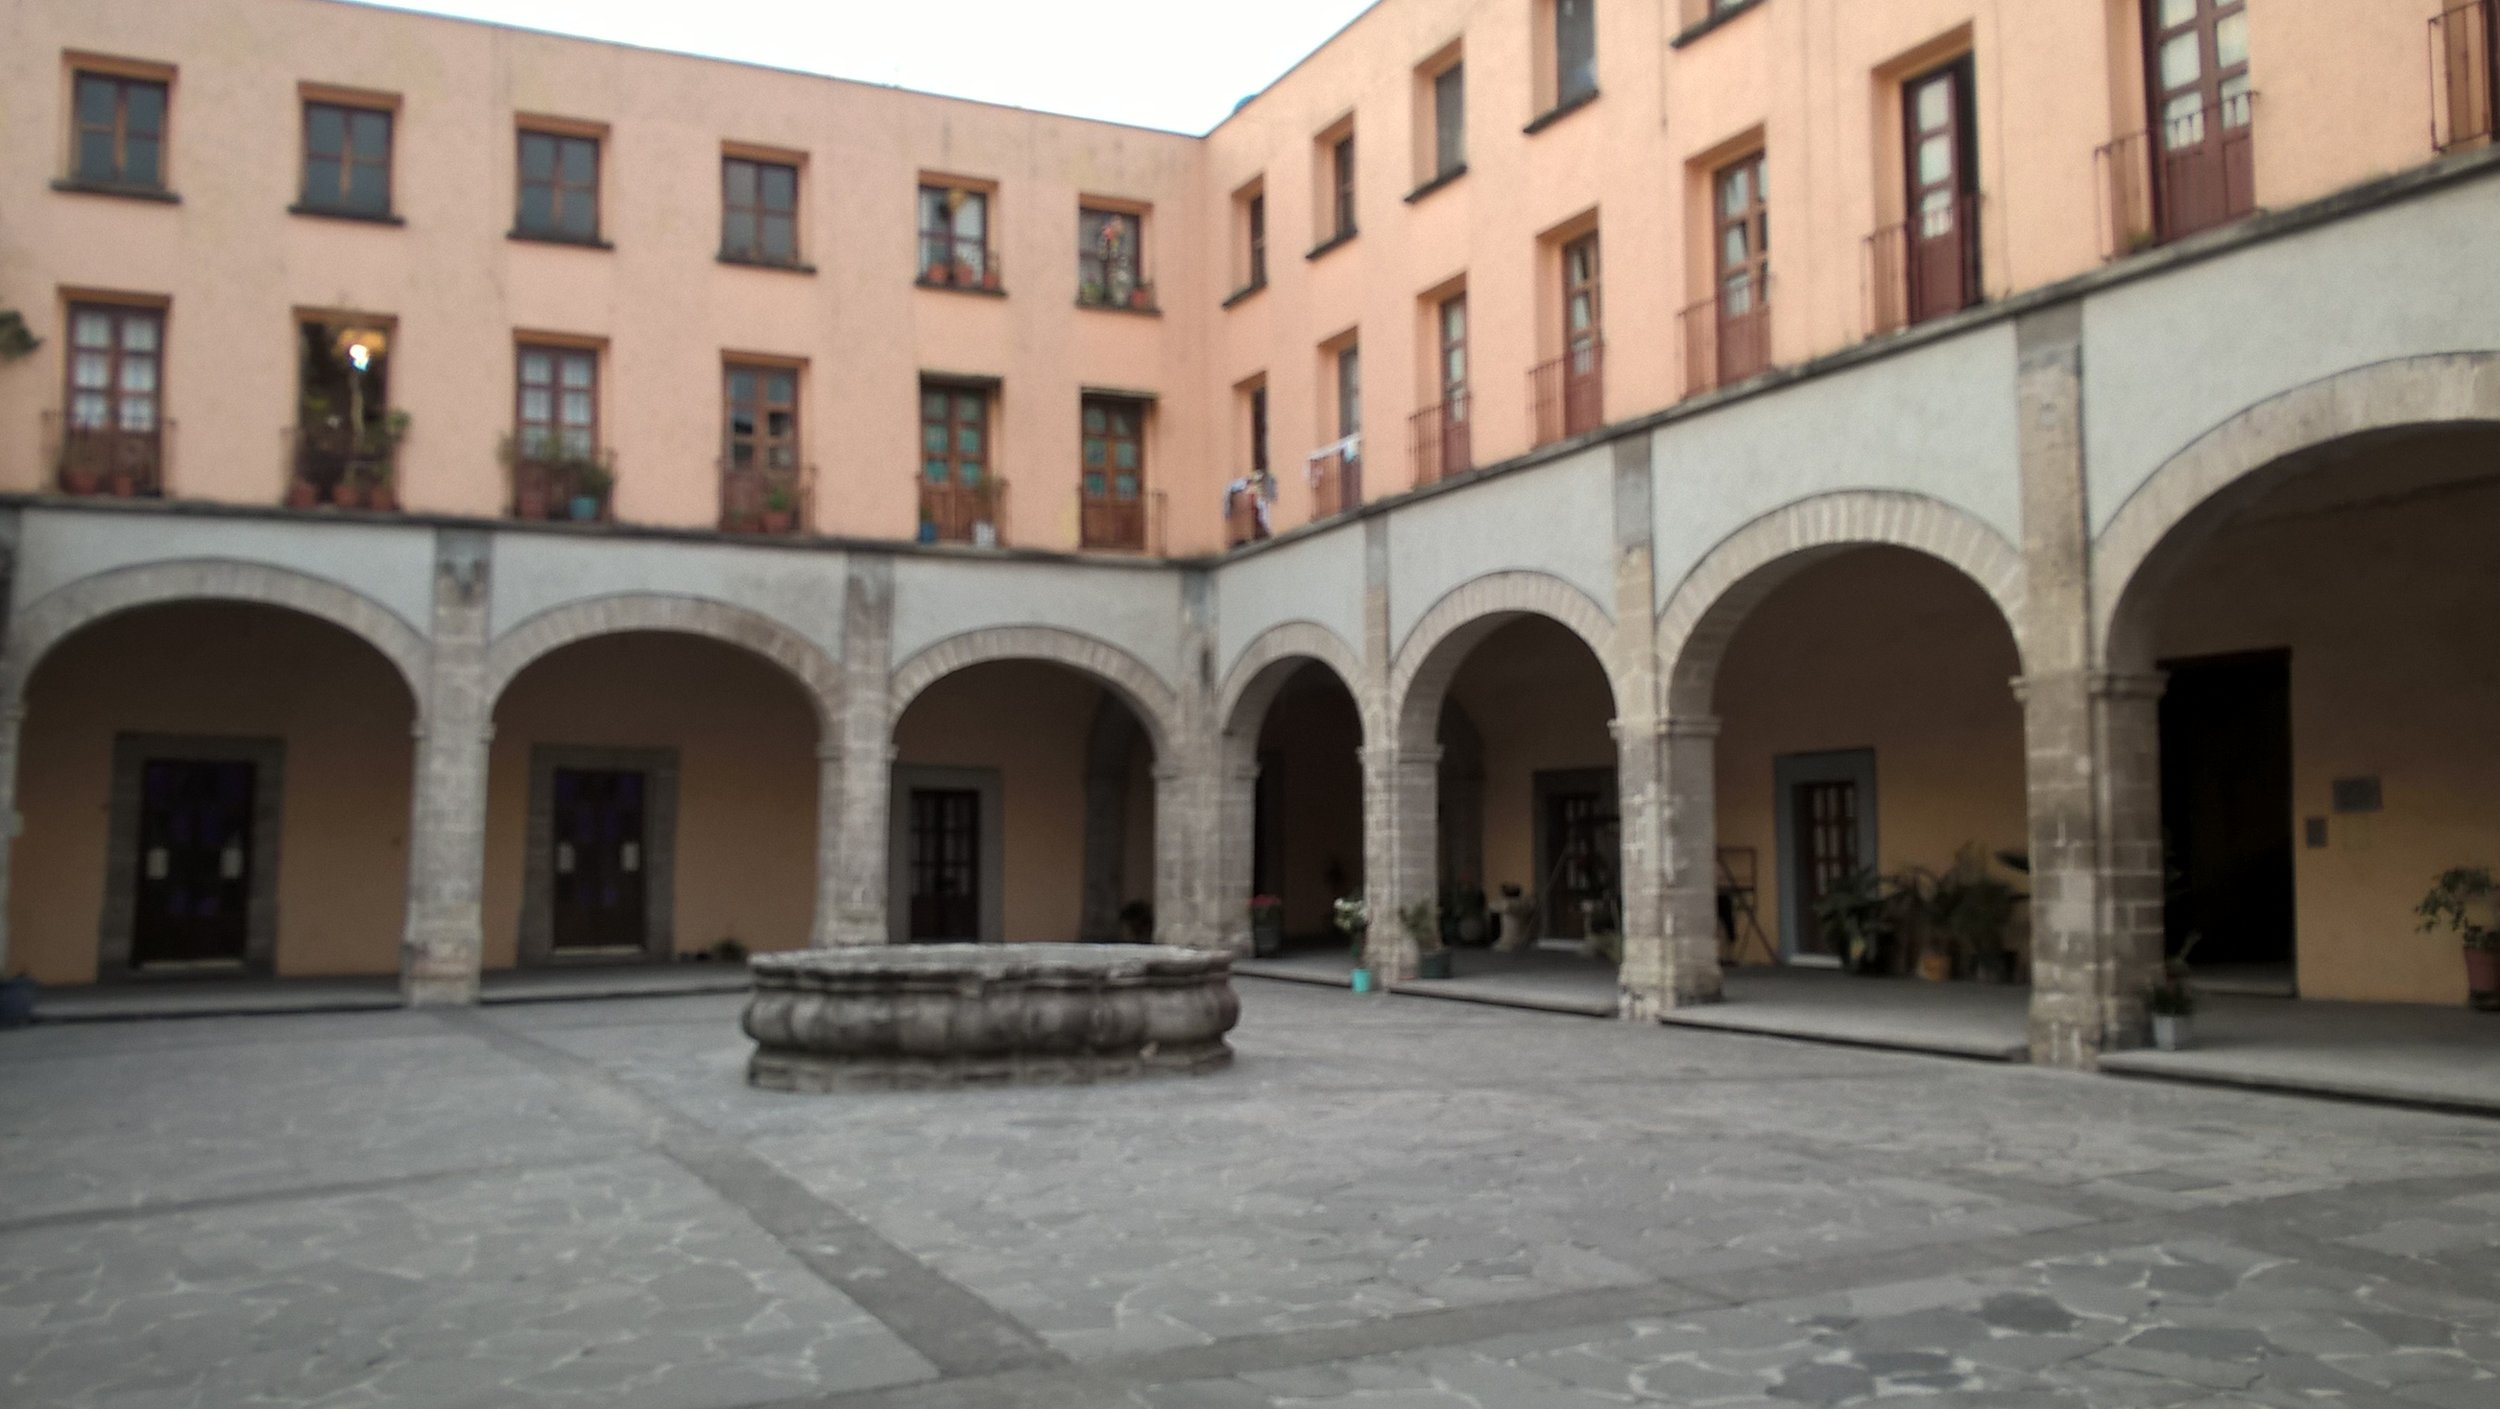 Courtyard of building